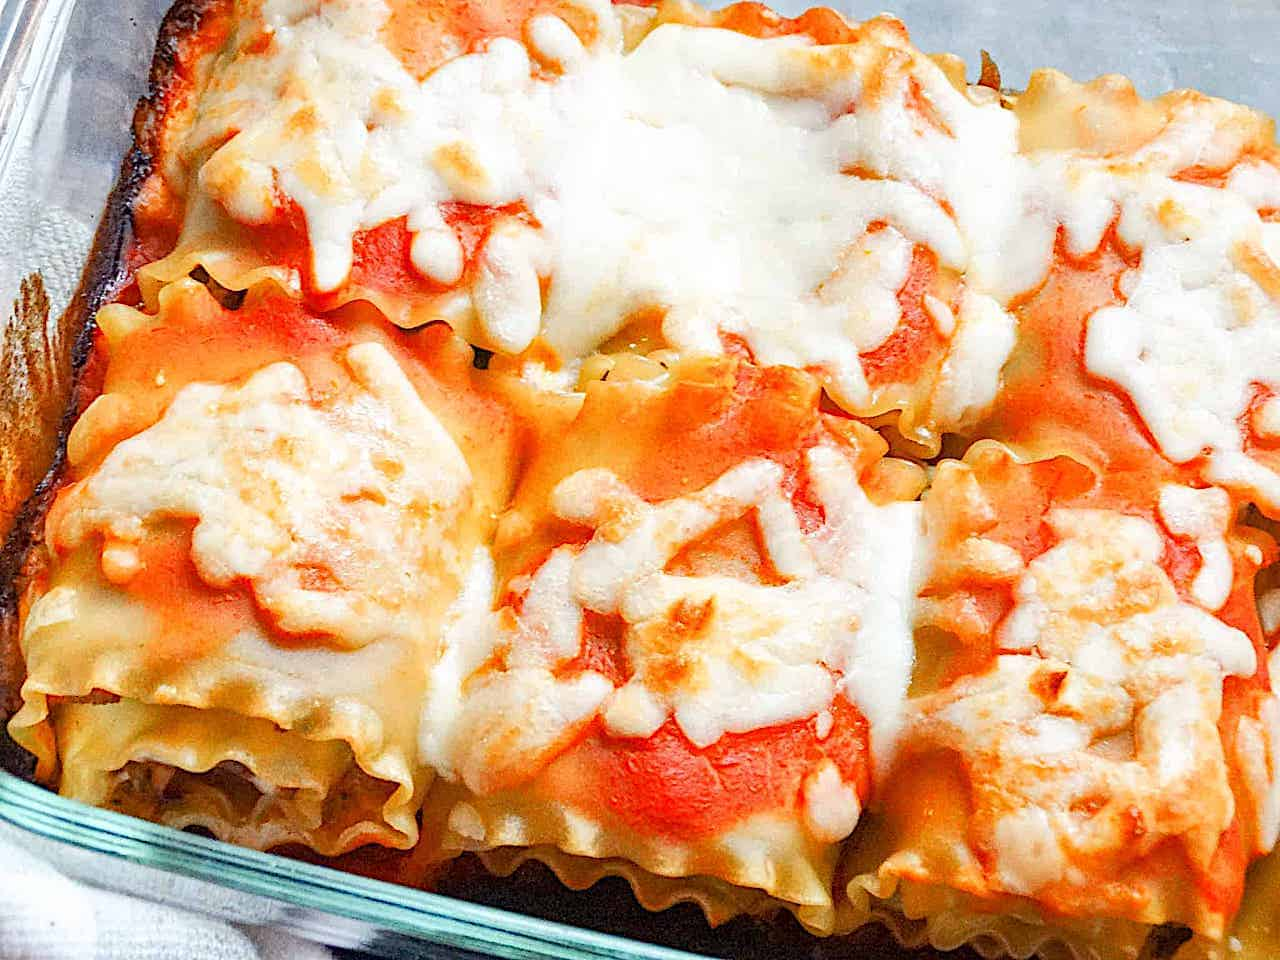 lasagna roll ups topped with mozzarella in a glass pan